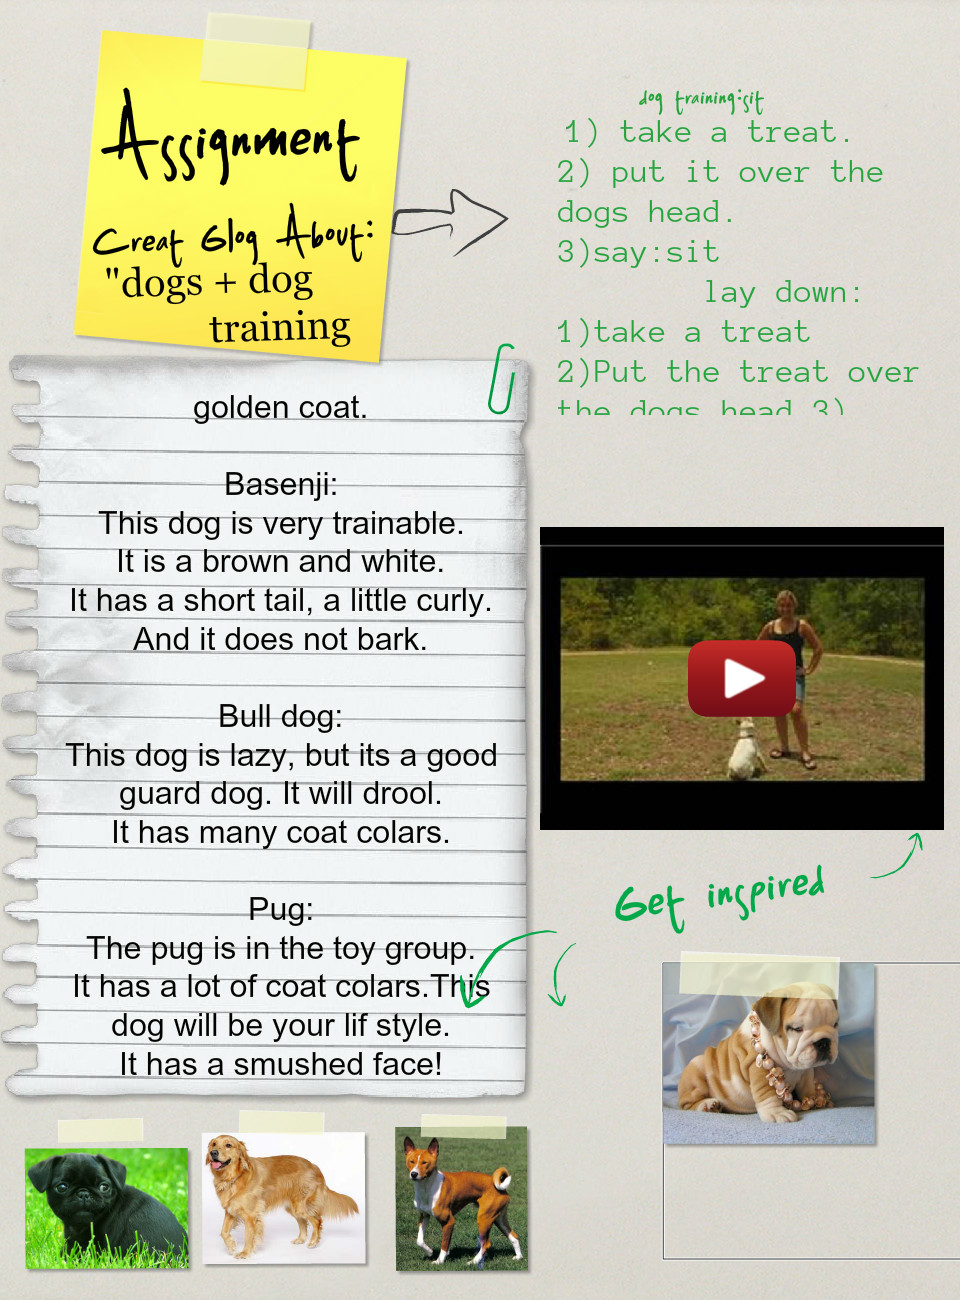 Dogs and dog training (Assignment), Animals